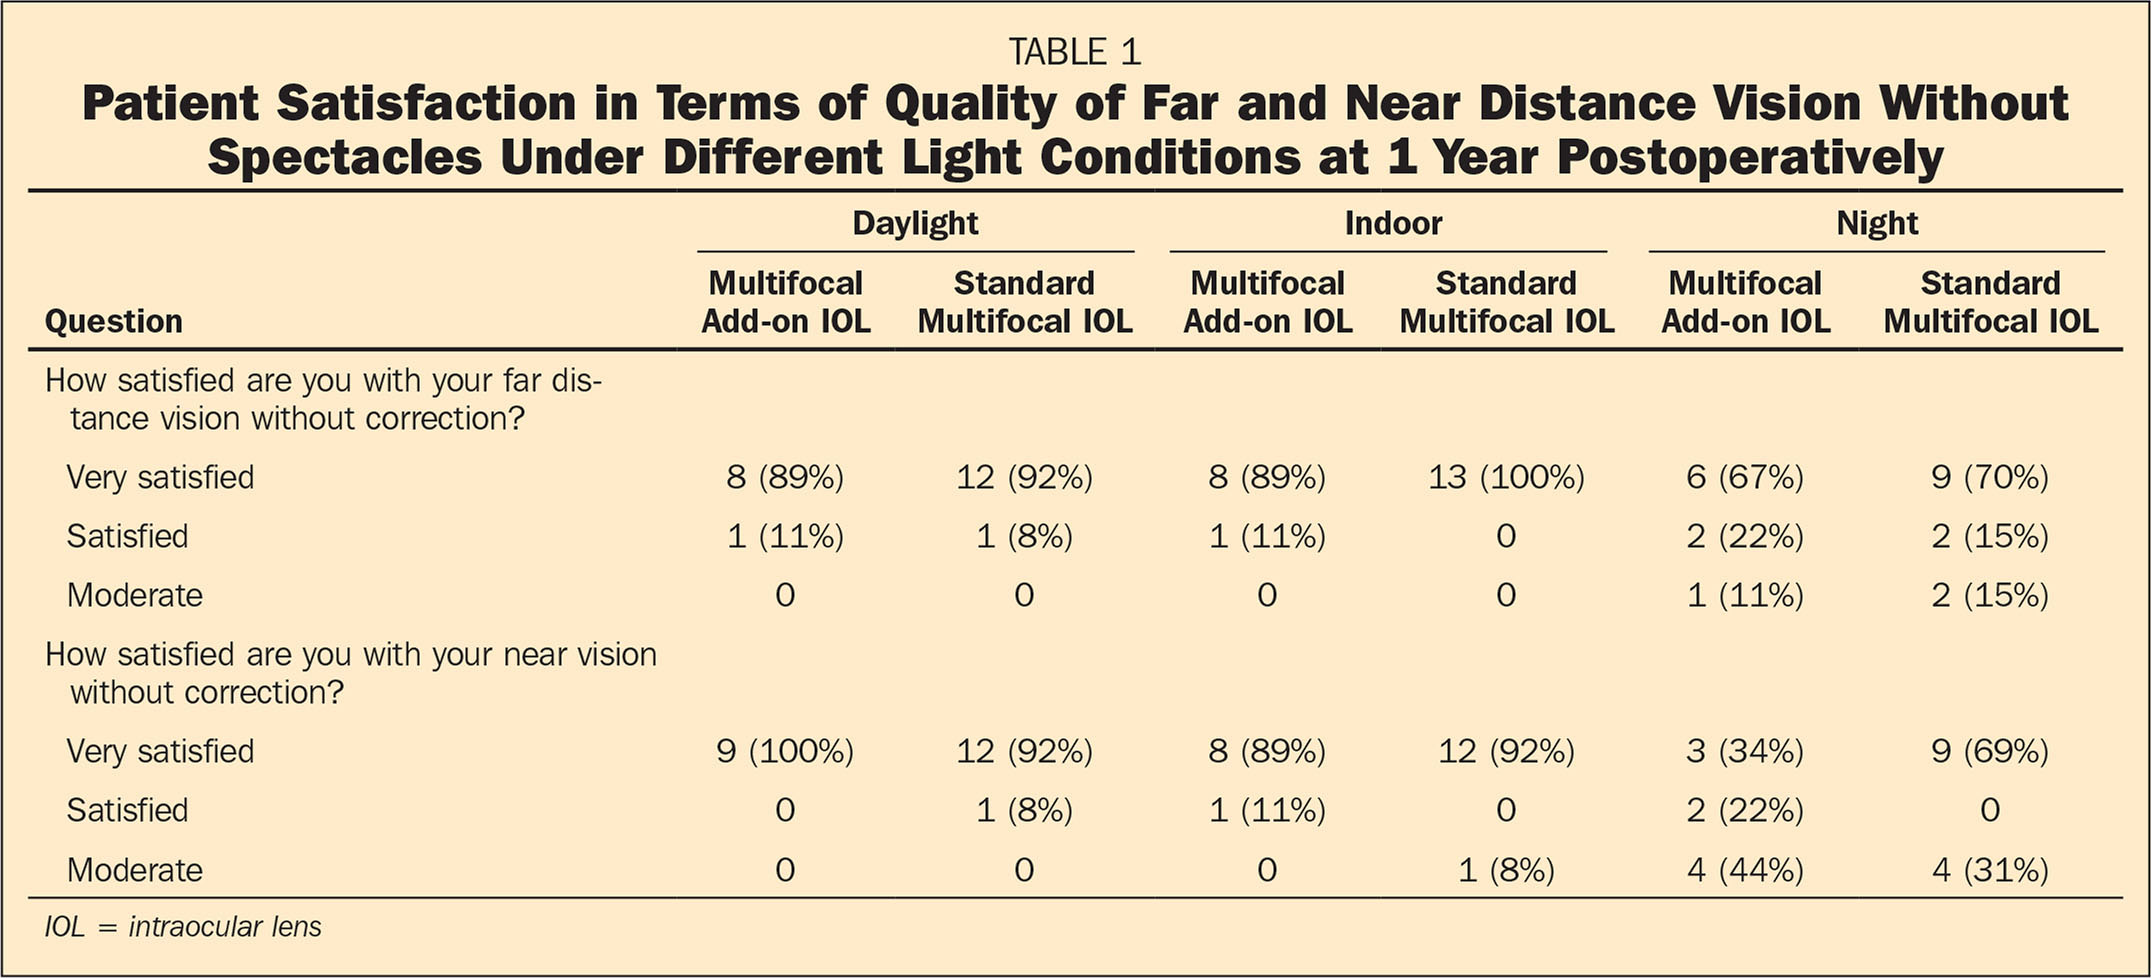 Patient Satisfaction in Terms of Quality of Far and Near Distance Vision Without Spectacles Under Different Light Conditions at 1 Year Postoperatively